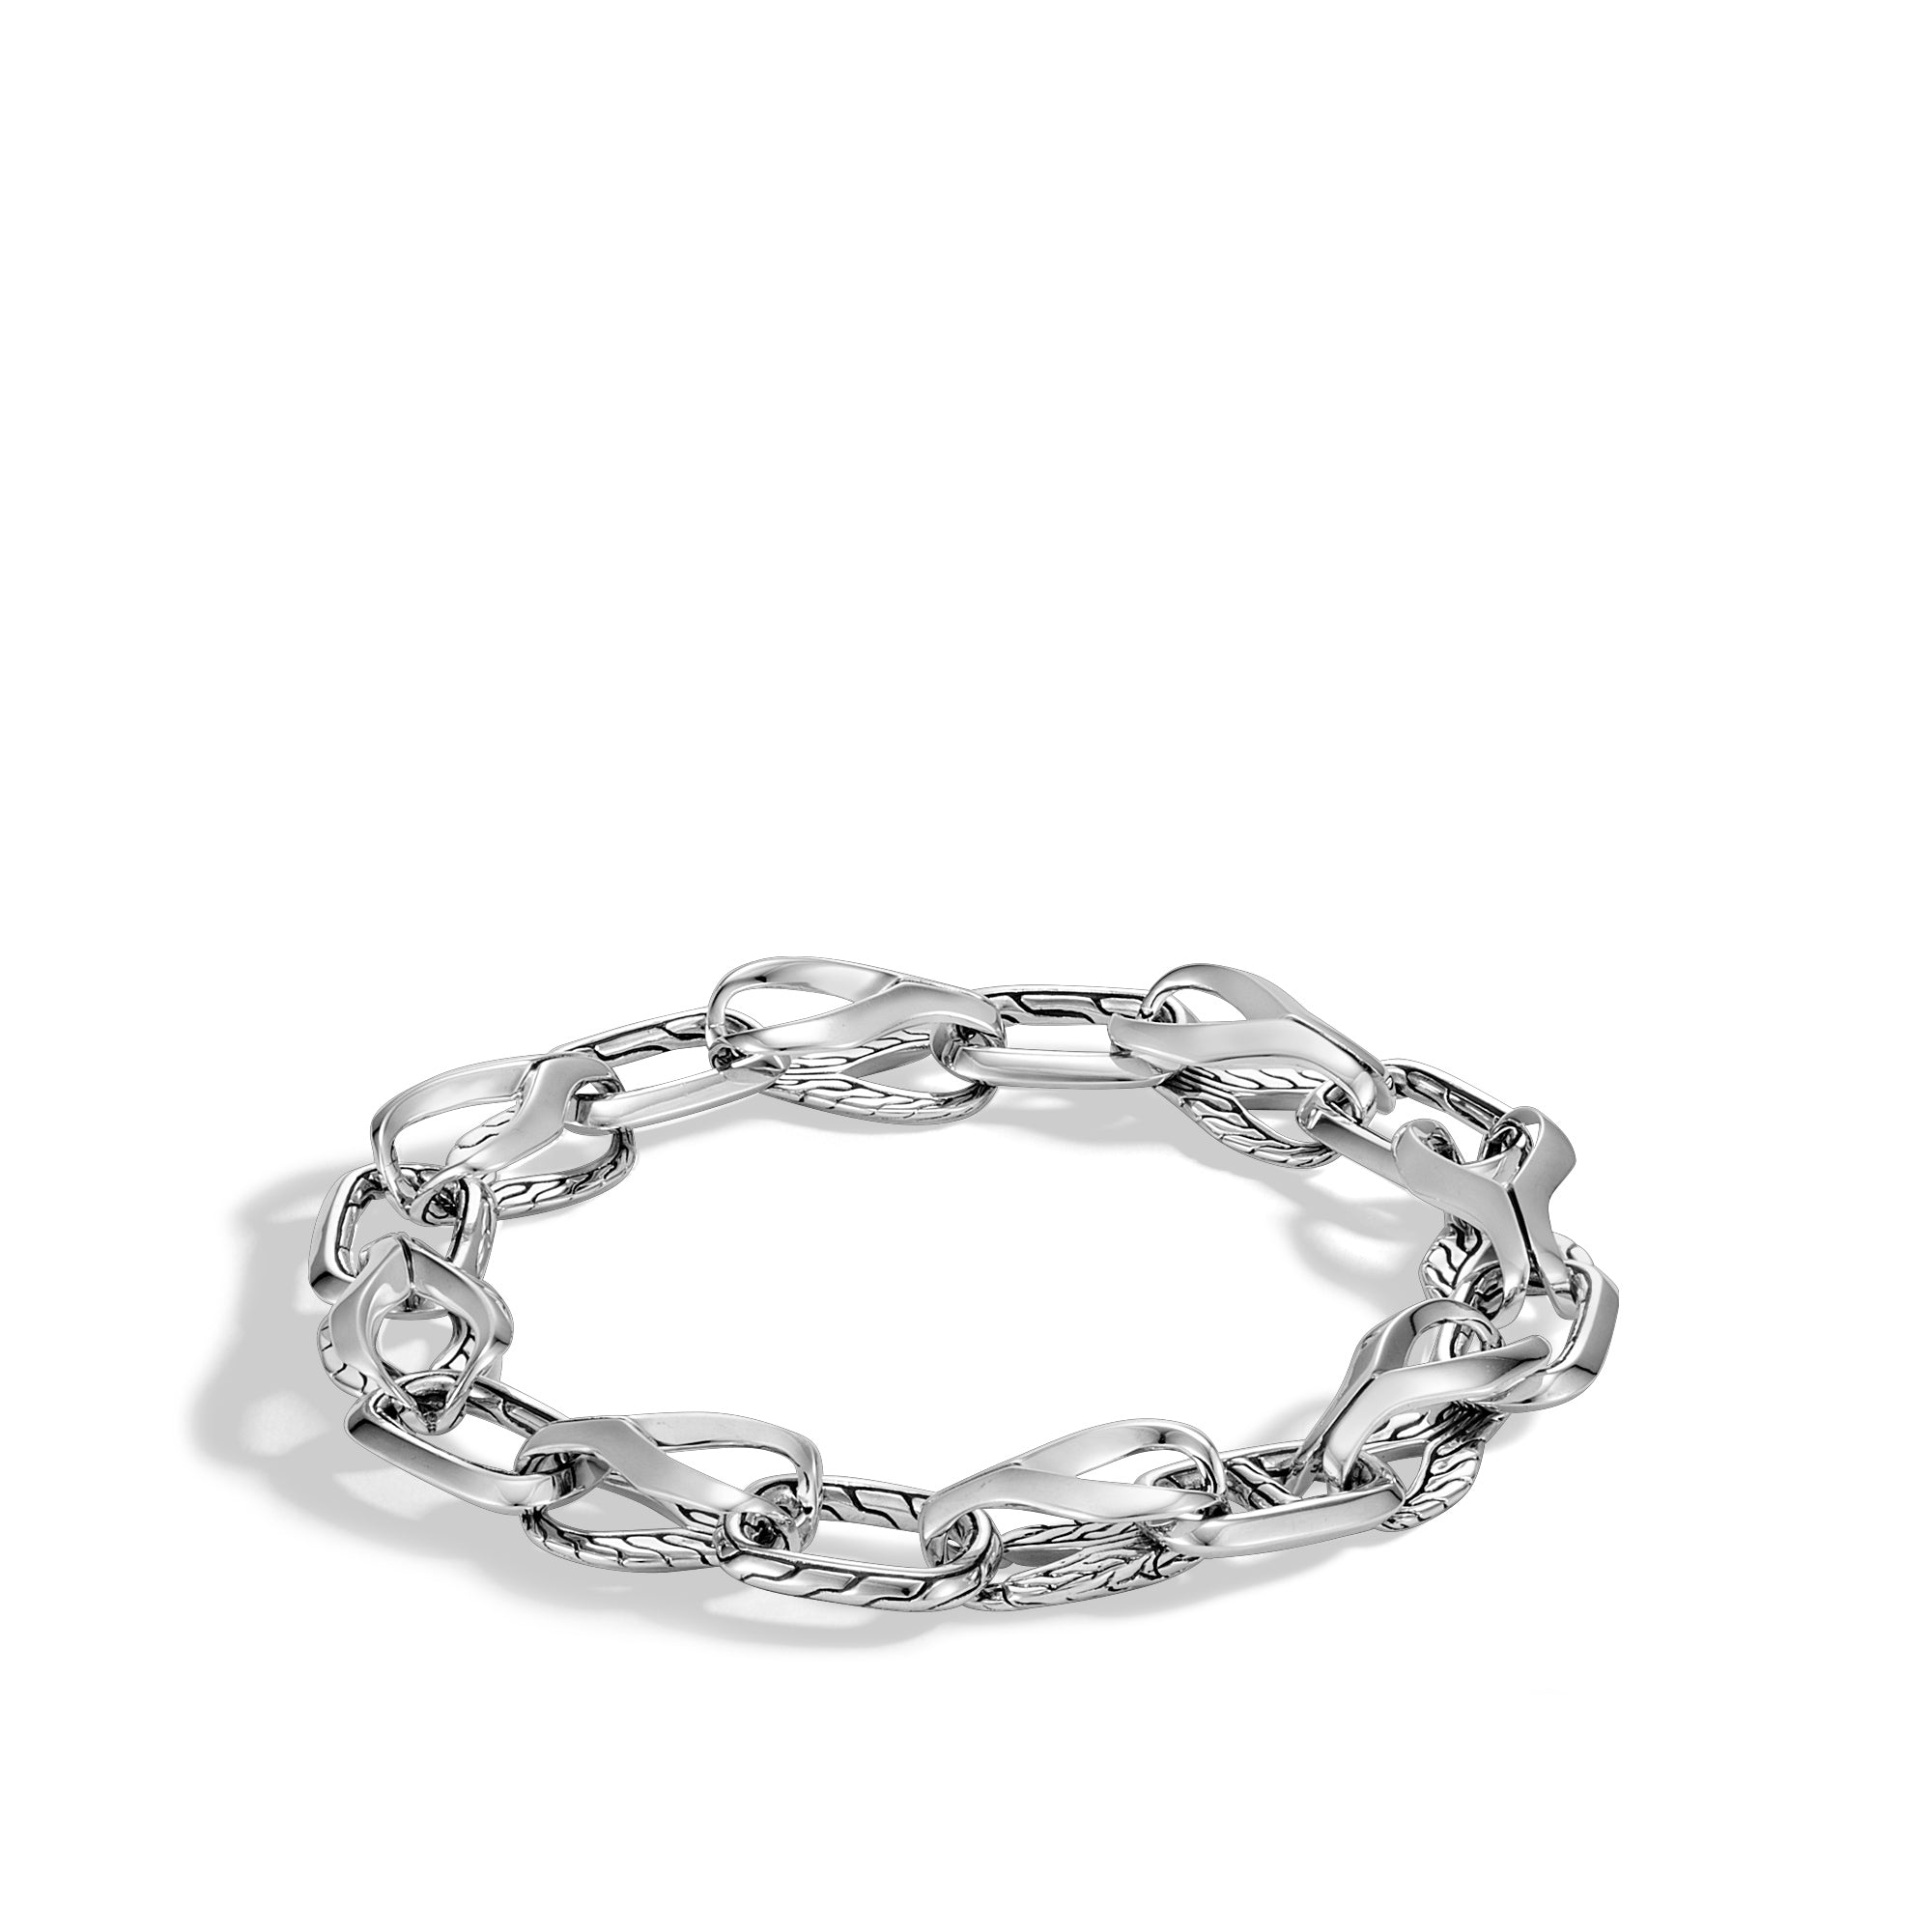 Asli Classic Chain Link Silver Link Bracelet with Hook Clasp